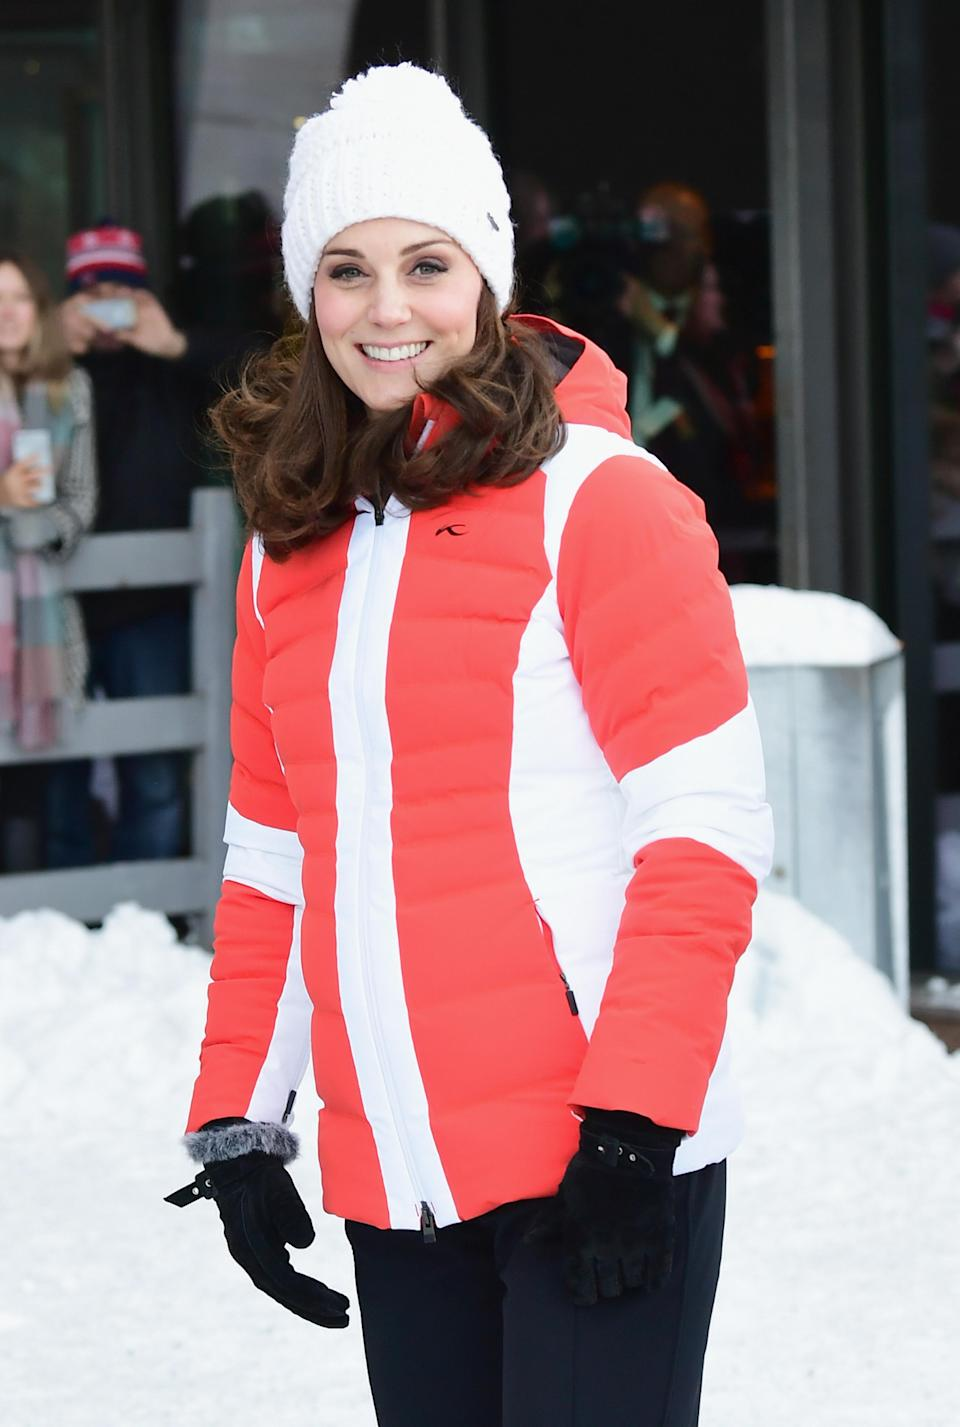 <p><strong>The occassion:</strong> At Holmenkollen ski jump in Oslo on day four of their visit to Sweden and Norway. <br><strong>The look:</strong> A two-toned, quilted jacket by Norweigan brand Kjus with a Barts white beanie hat.<br>[Photo: Getty] </p>